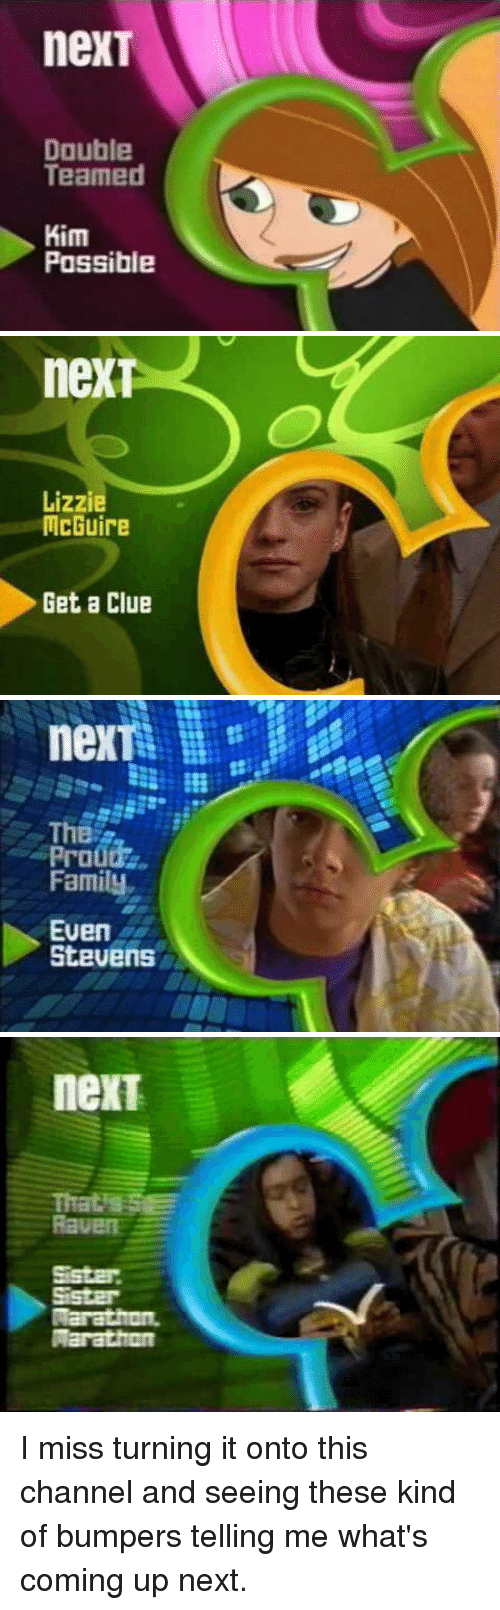 Funny, Marathon, and Next: nexT  Double  Teamed  Kim  Possible   nex  Lizzie  McGuire  Get a Clue   nexT  The  Family  Even  Stevens   neXT  Marathon. I miss turning it onto this channel and seeing these kind of bumpers telling me what's coming up next.